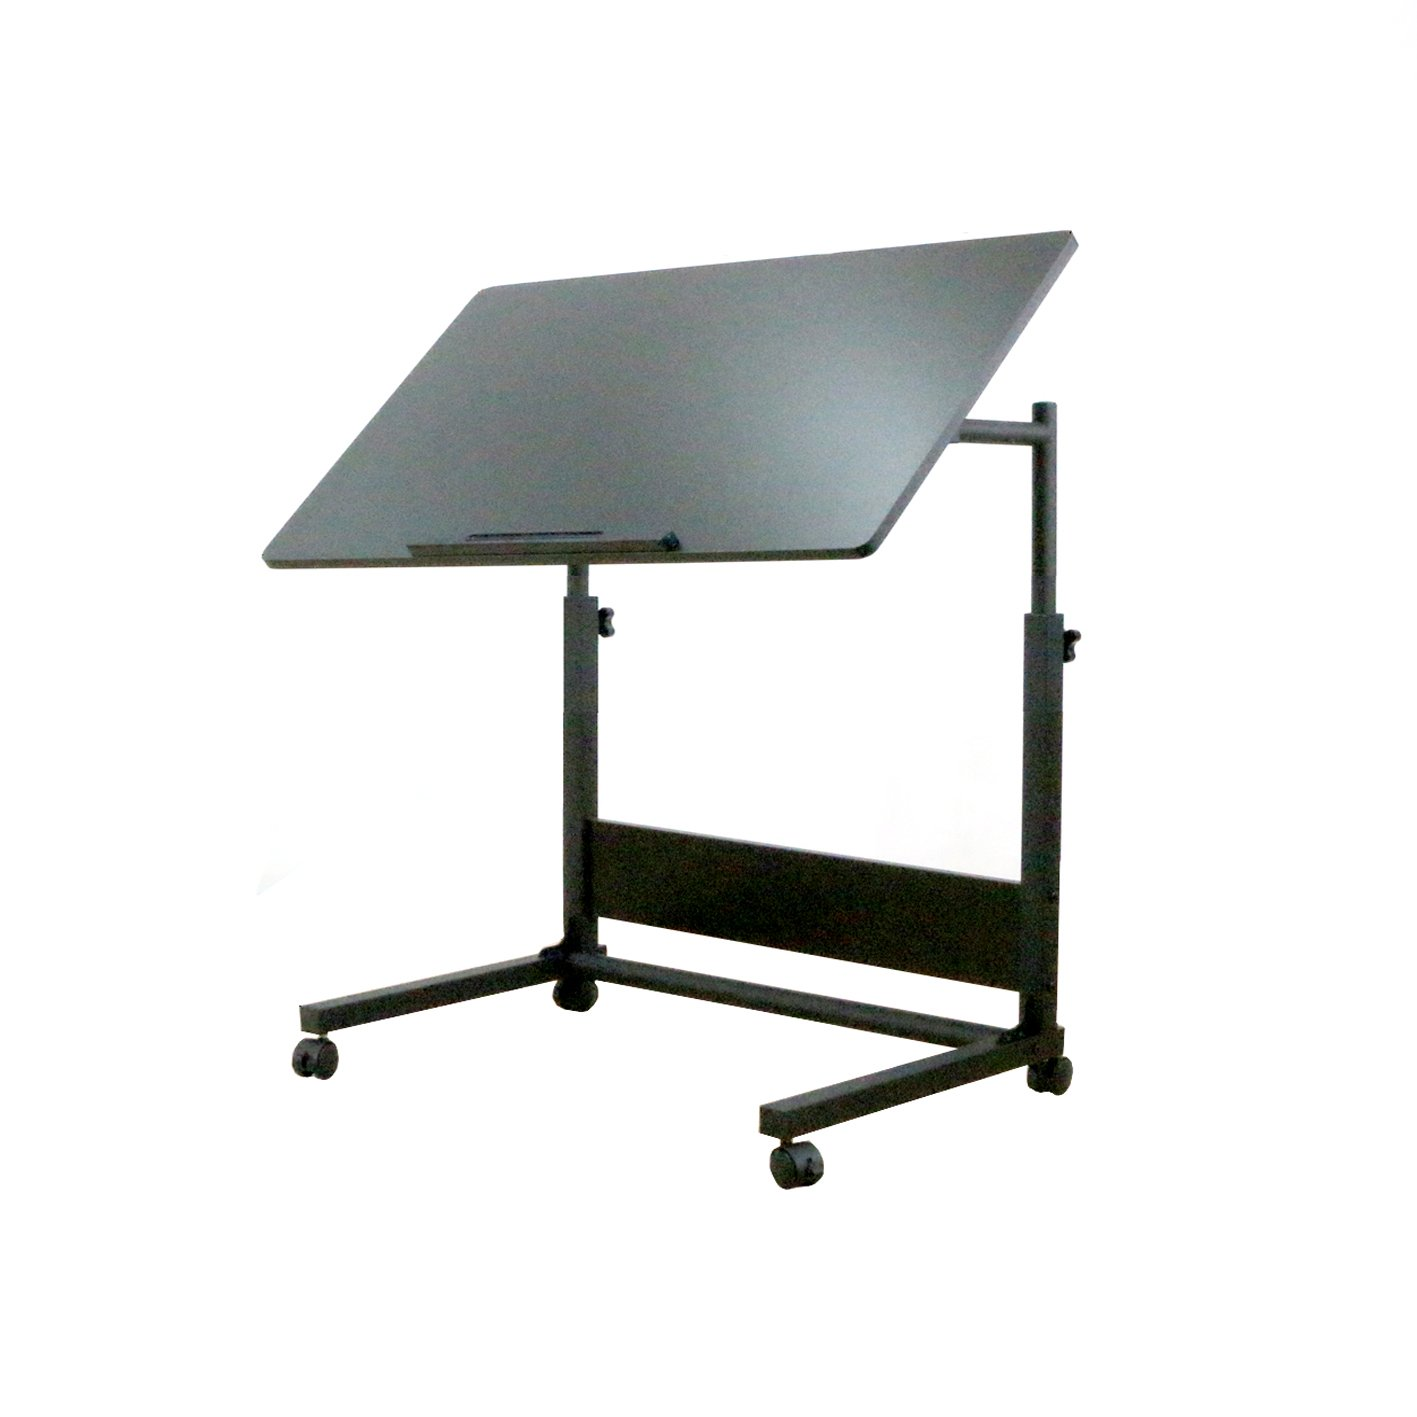 UNICOO-Height Adjustable Laptop Cart, Computer Desk, Sofa Side Table, Couch Table, Bedside Table, Drafting Table,Drawing Desk. (Black U05)